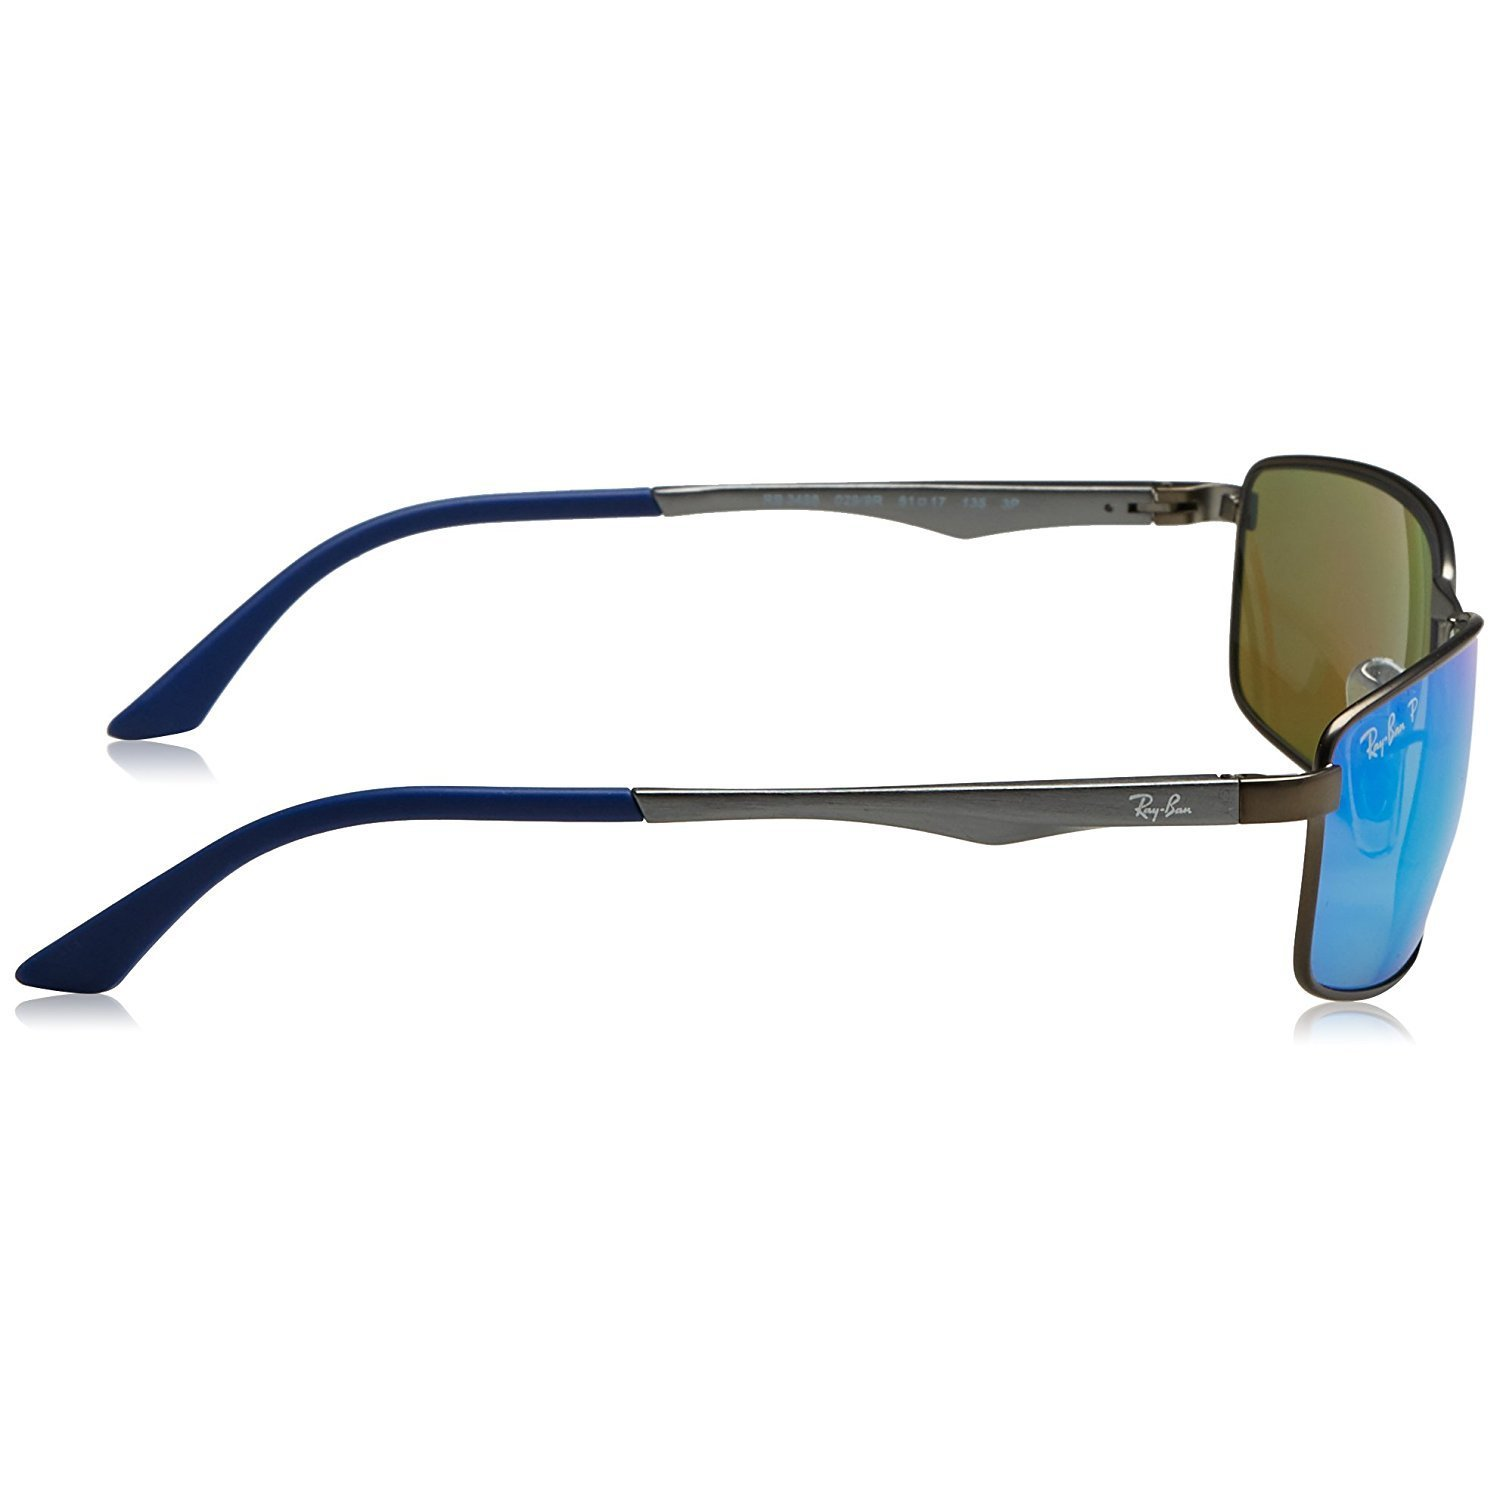 43cecf3dbb Shop Ray-Ban Men s RB3498 029 9R Gunmetal Frame Polarized Blue Flash 61 mm  Lens Sunglasses - Free Shipping Today - Overstock - 16740916